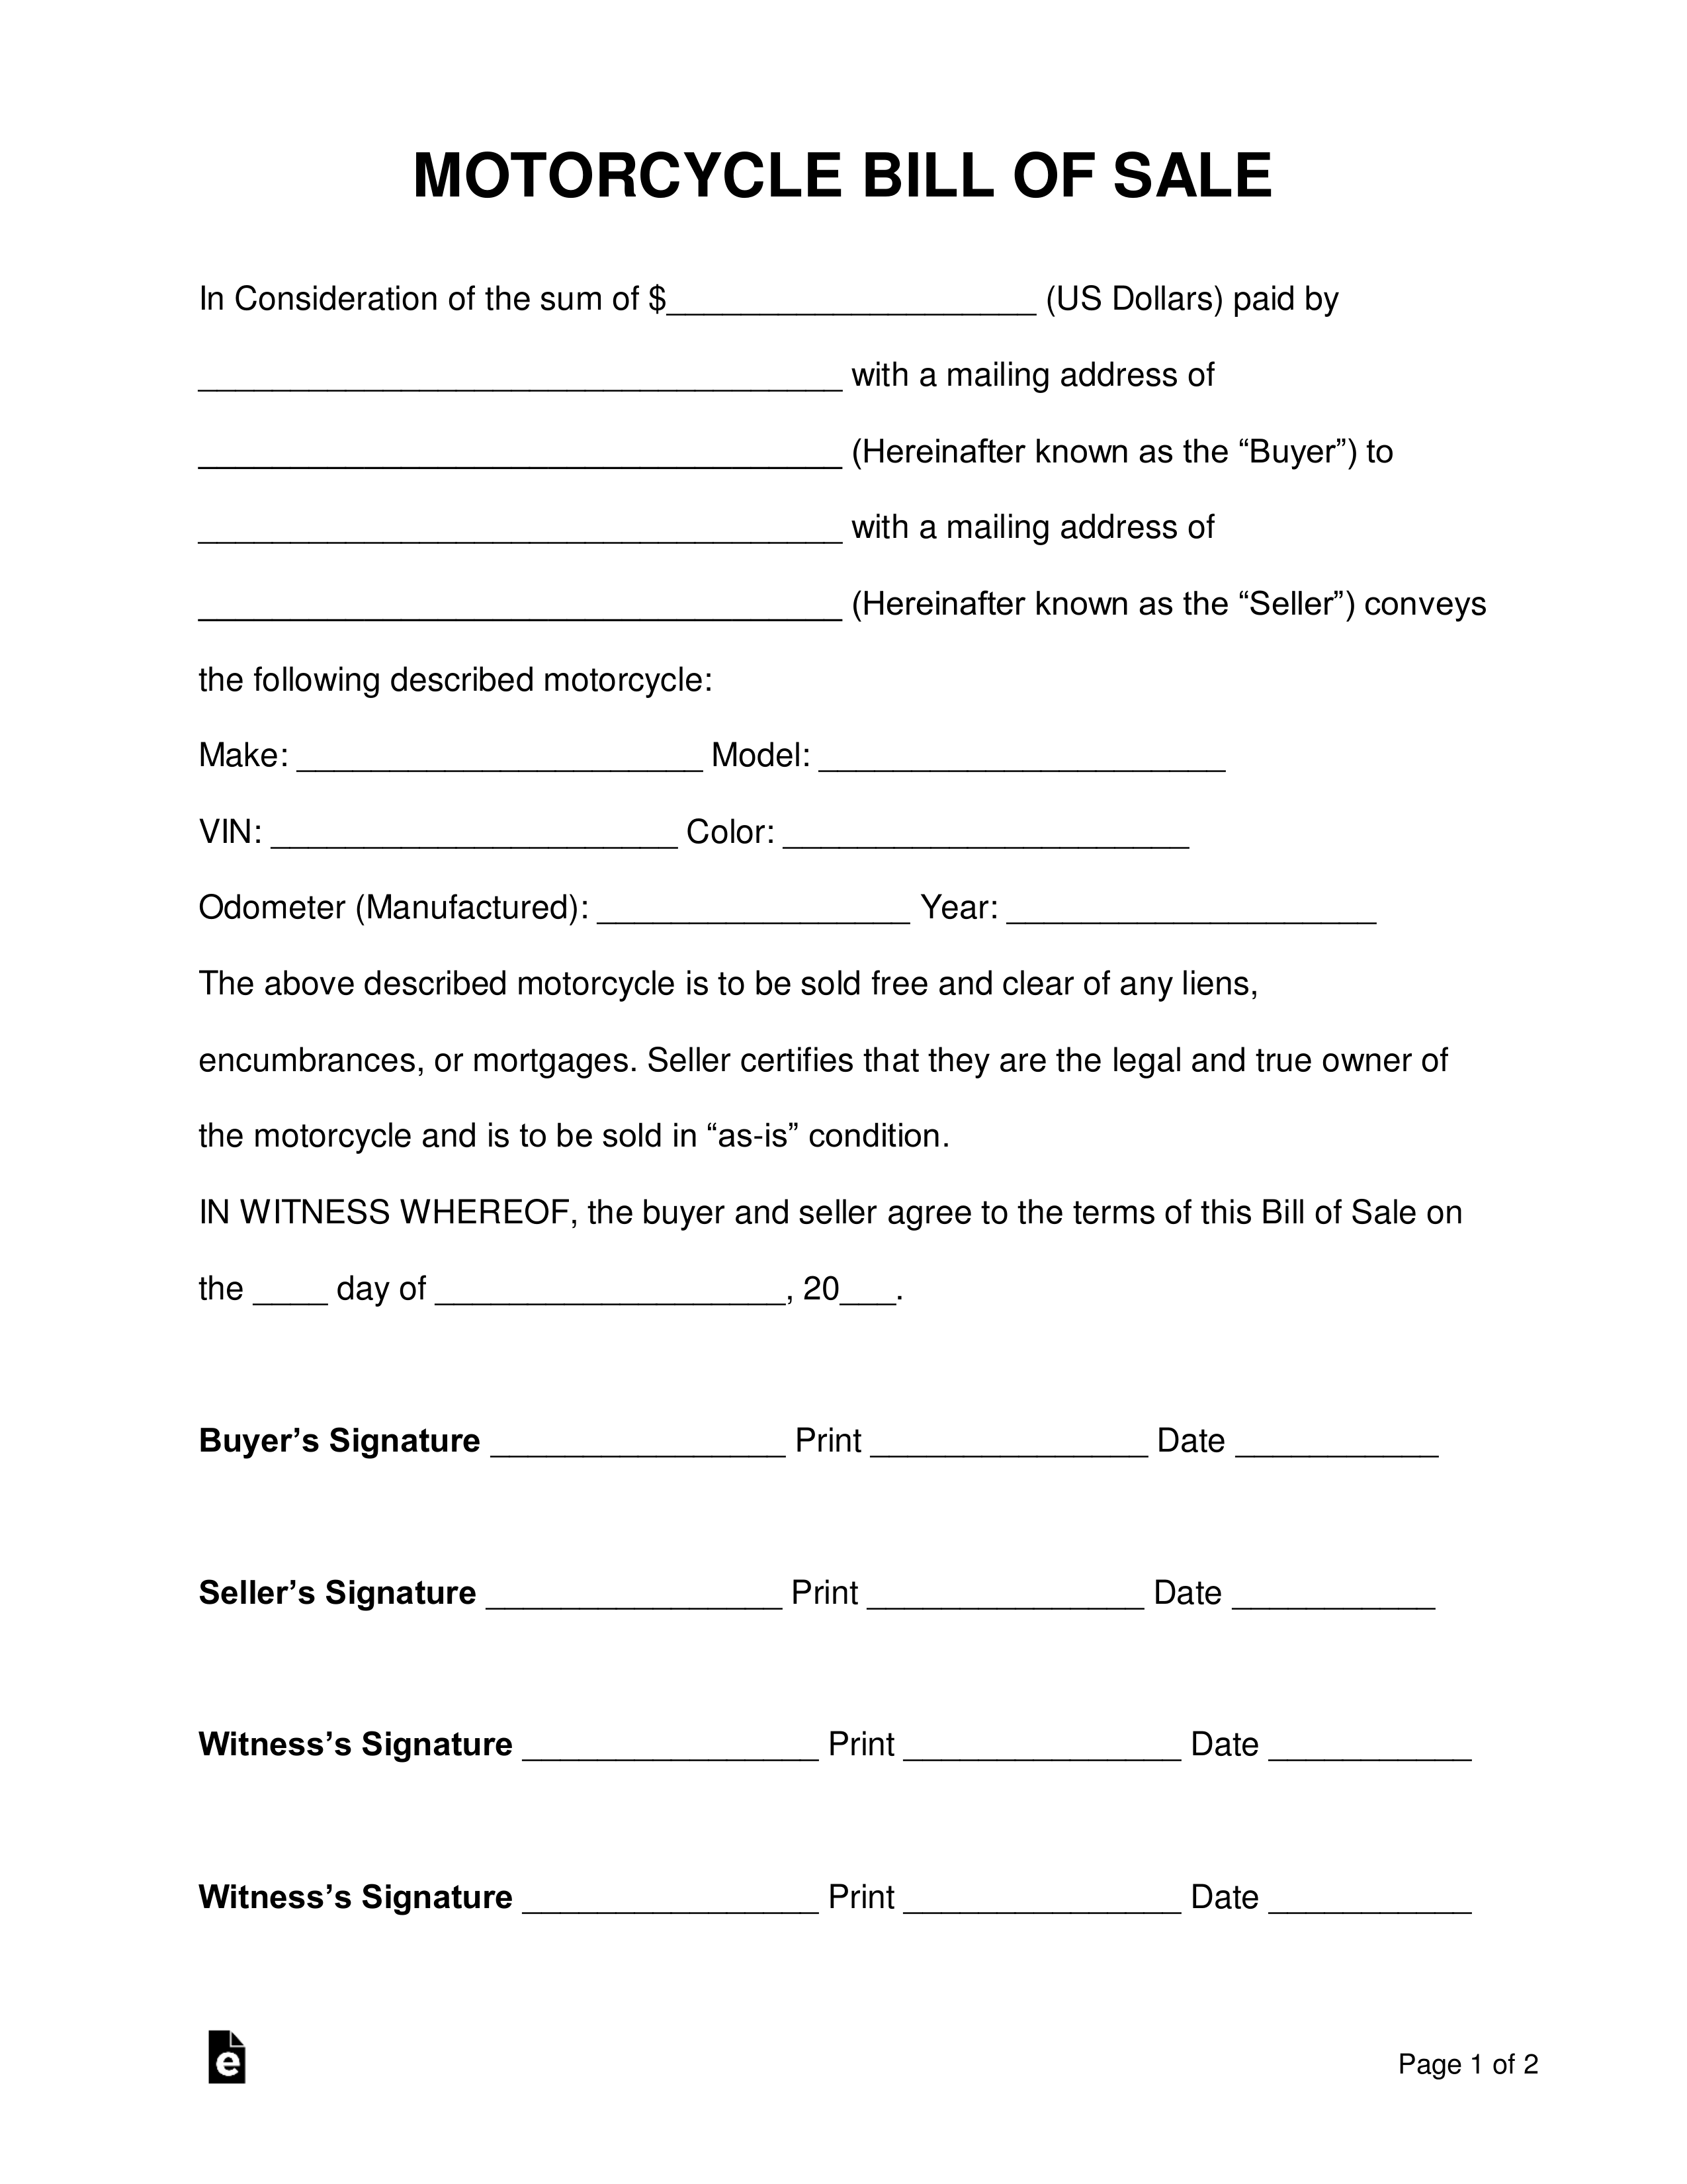 Free Motorcycle Bill Of Sale Form - Pdf | Word | Eforms